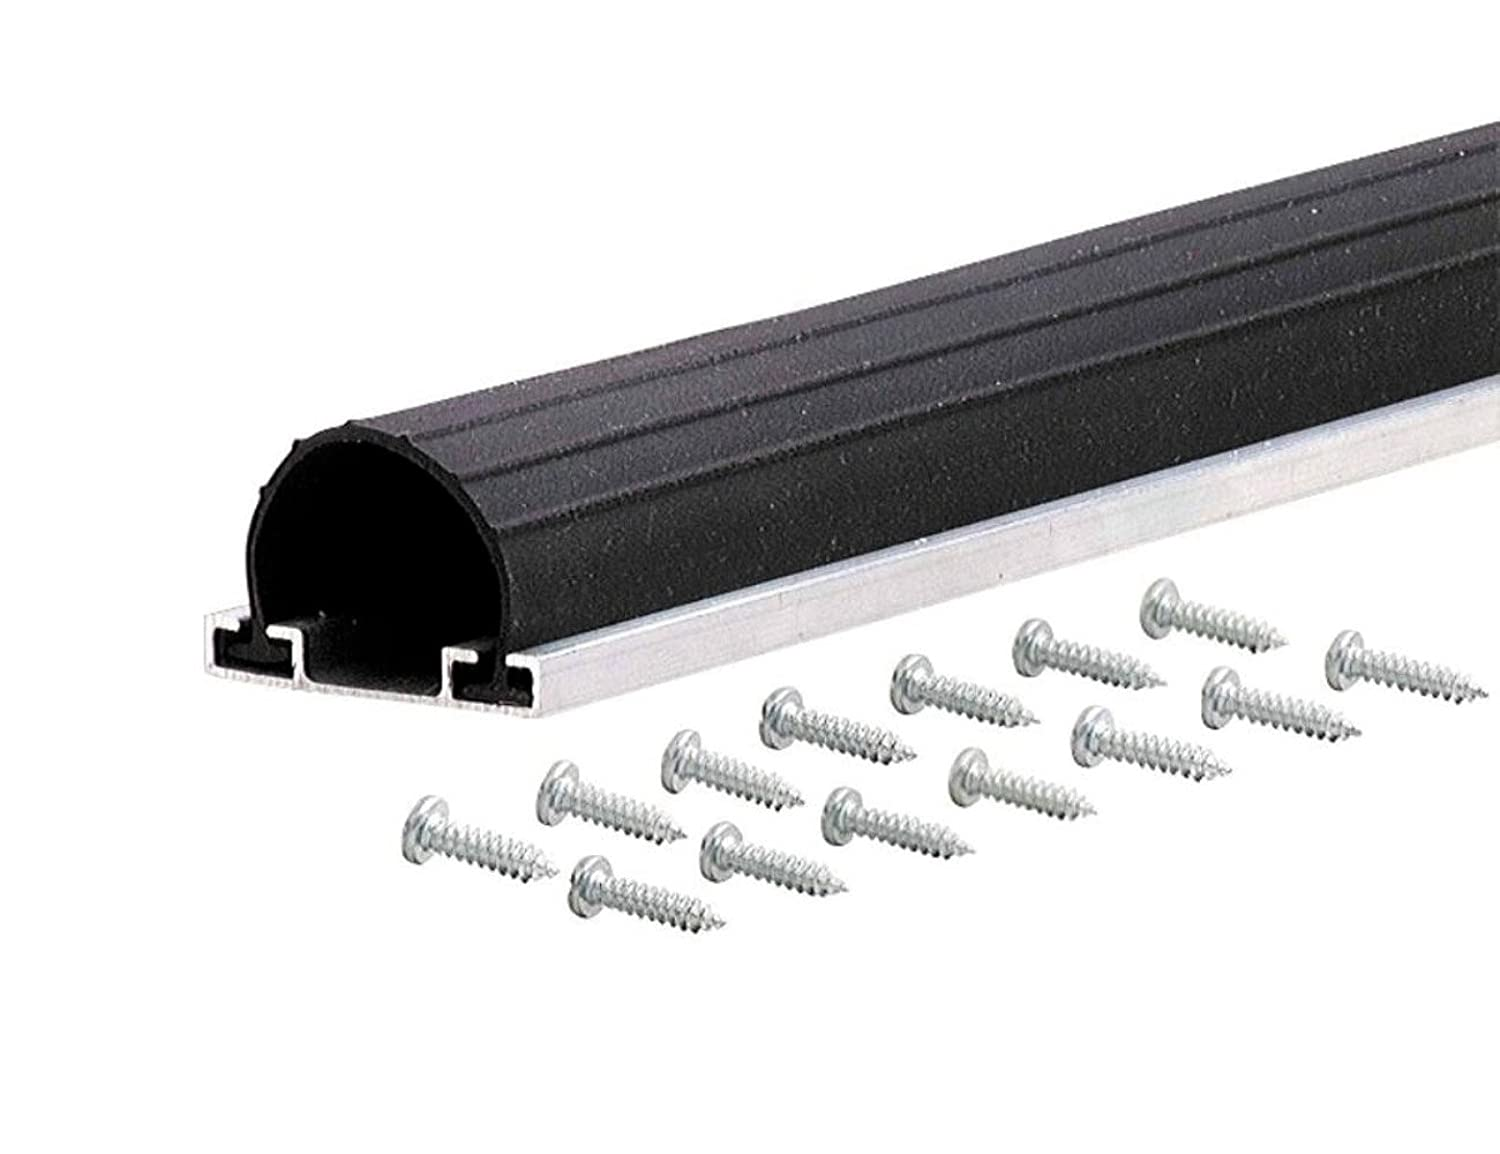 M-D Building Products 87643 9-Feet Universal Aluminum and Rubber Garage Door Bottom, Black